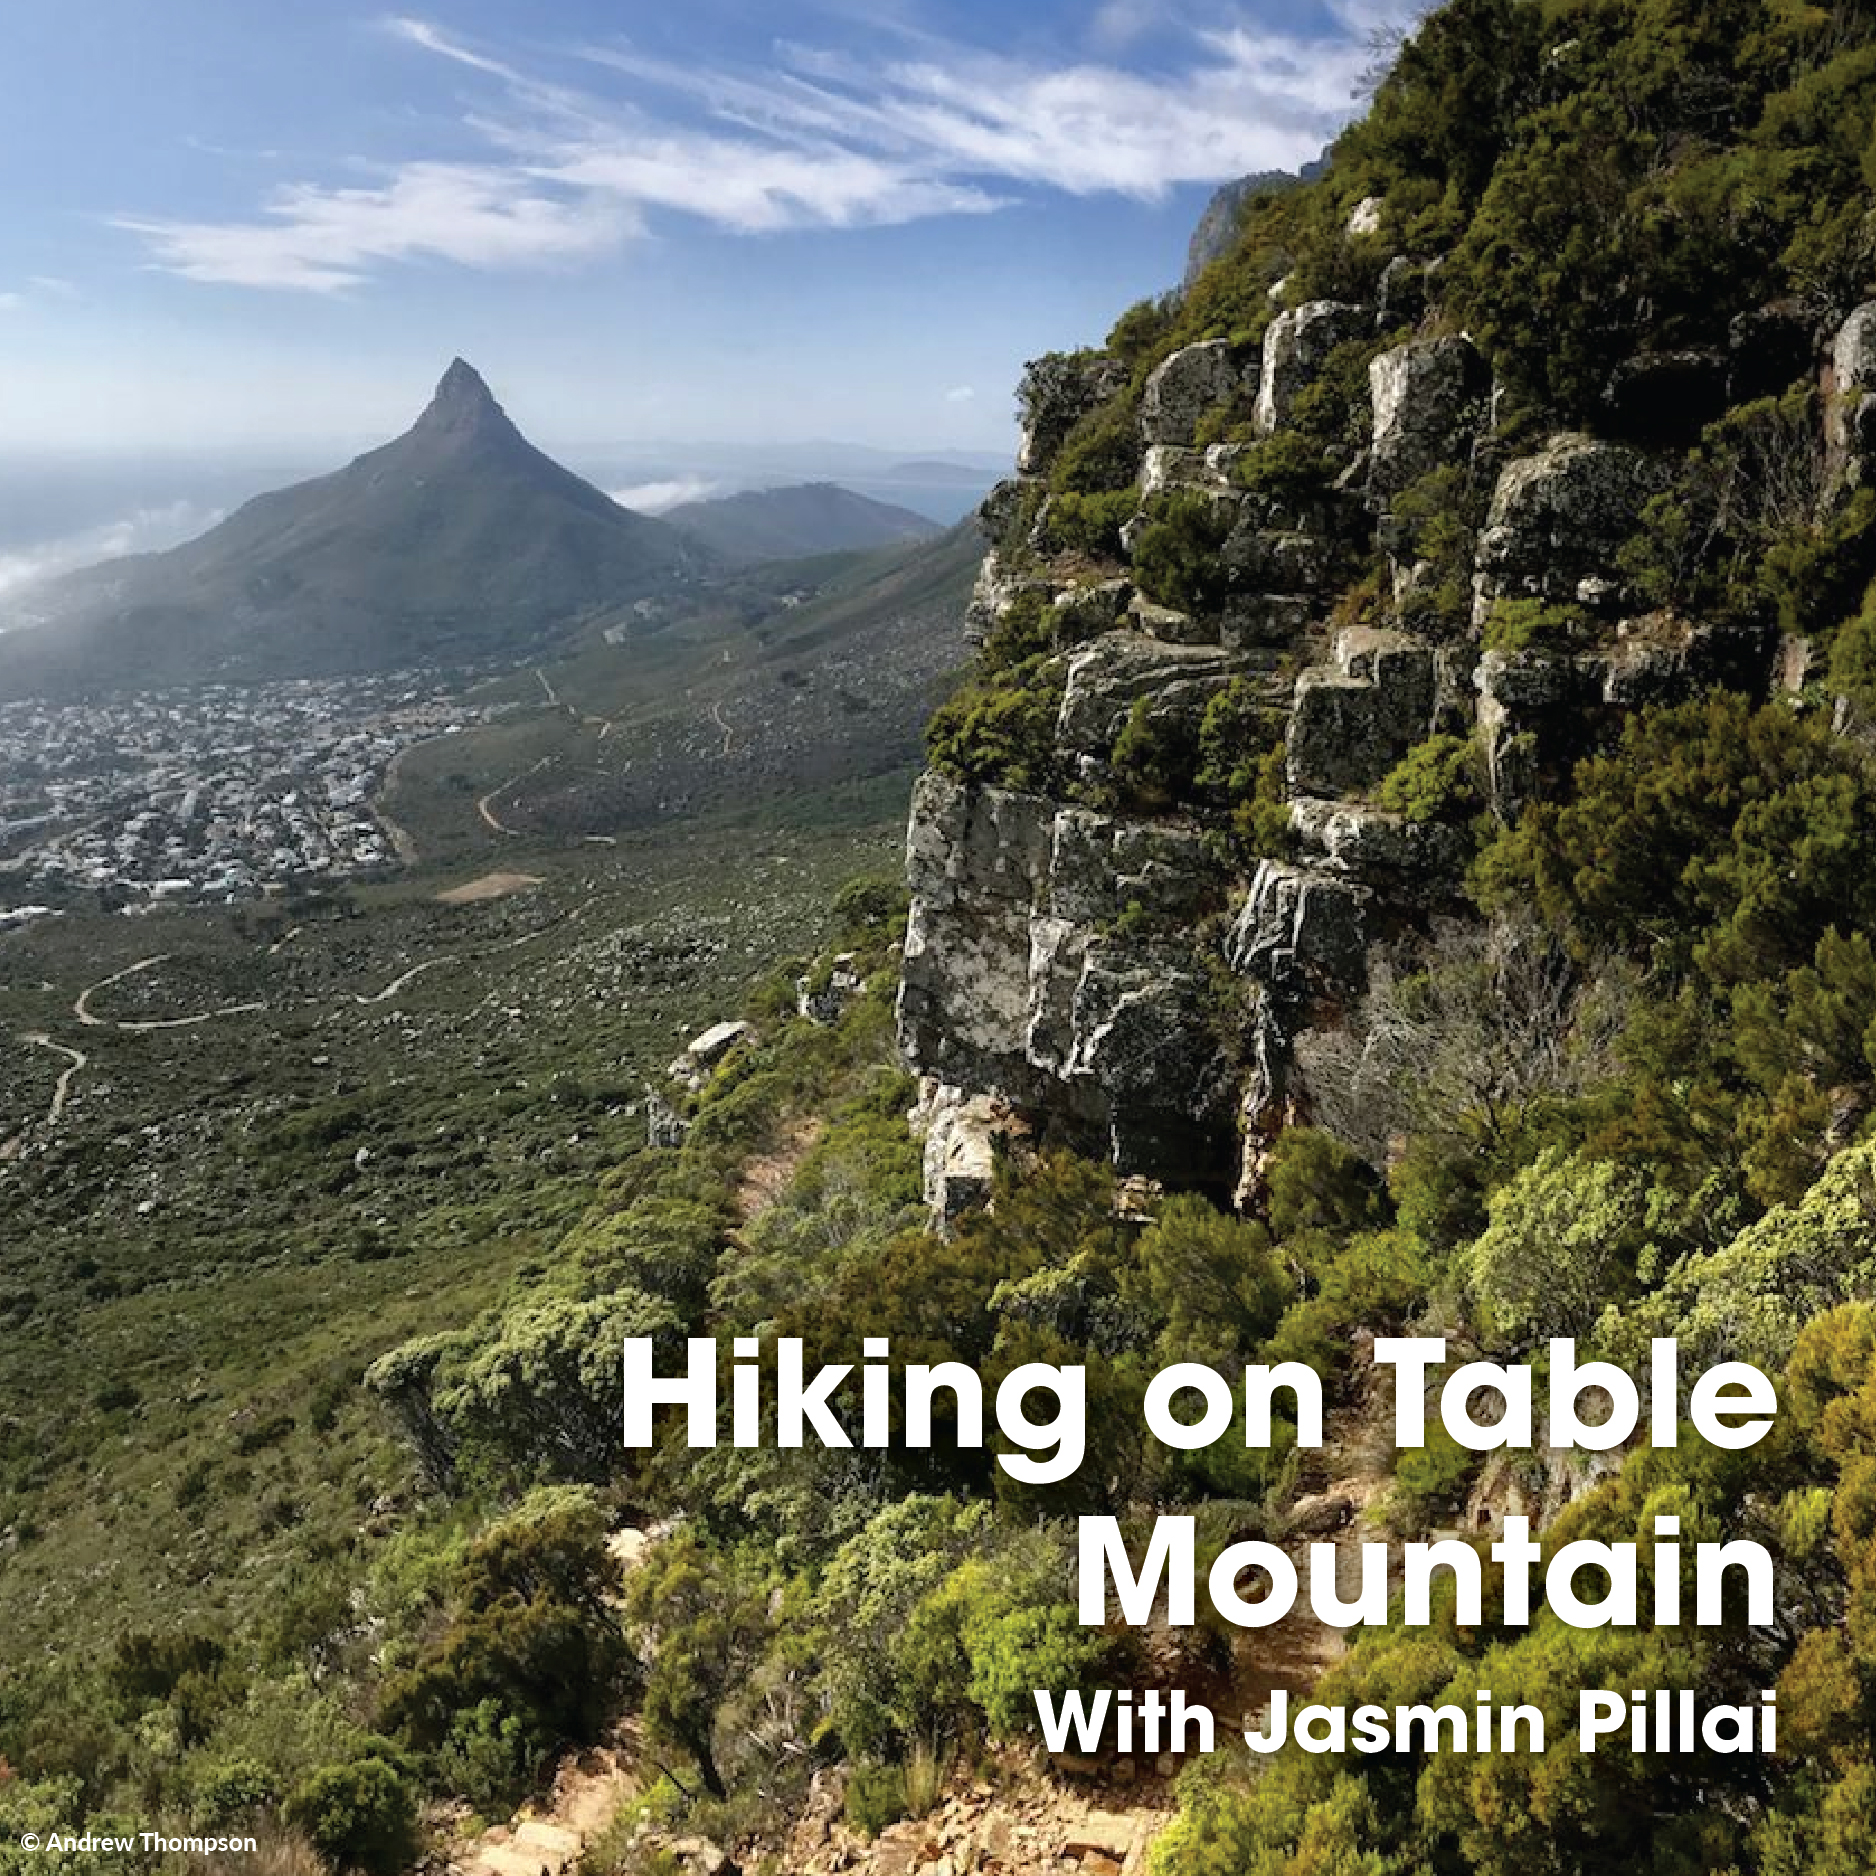 Advice for Hiking on Table Mountain